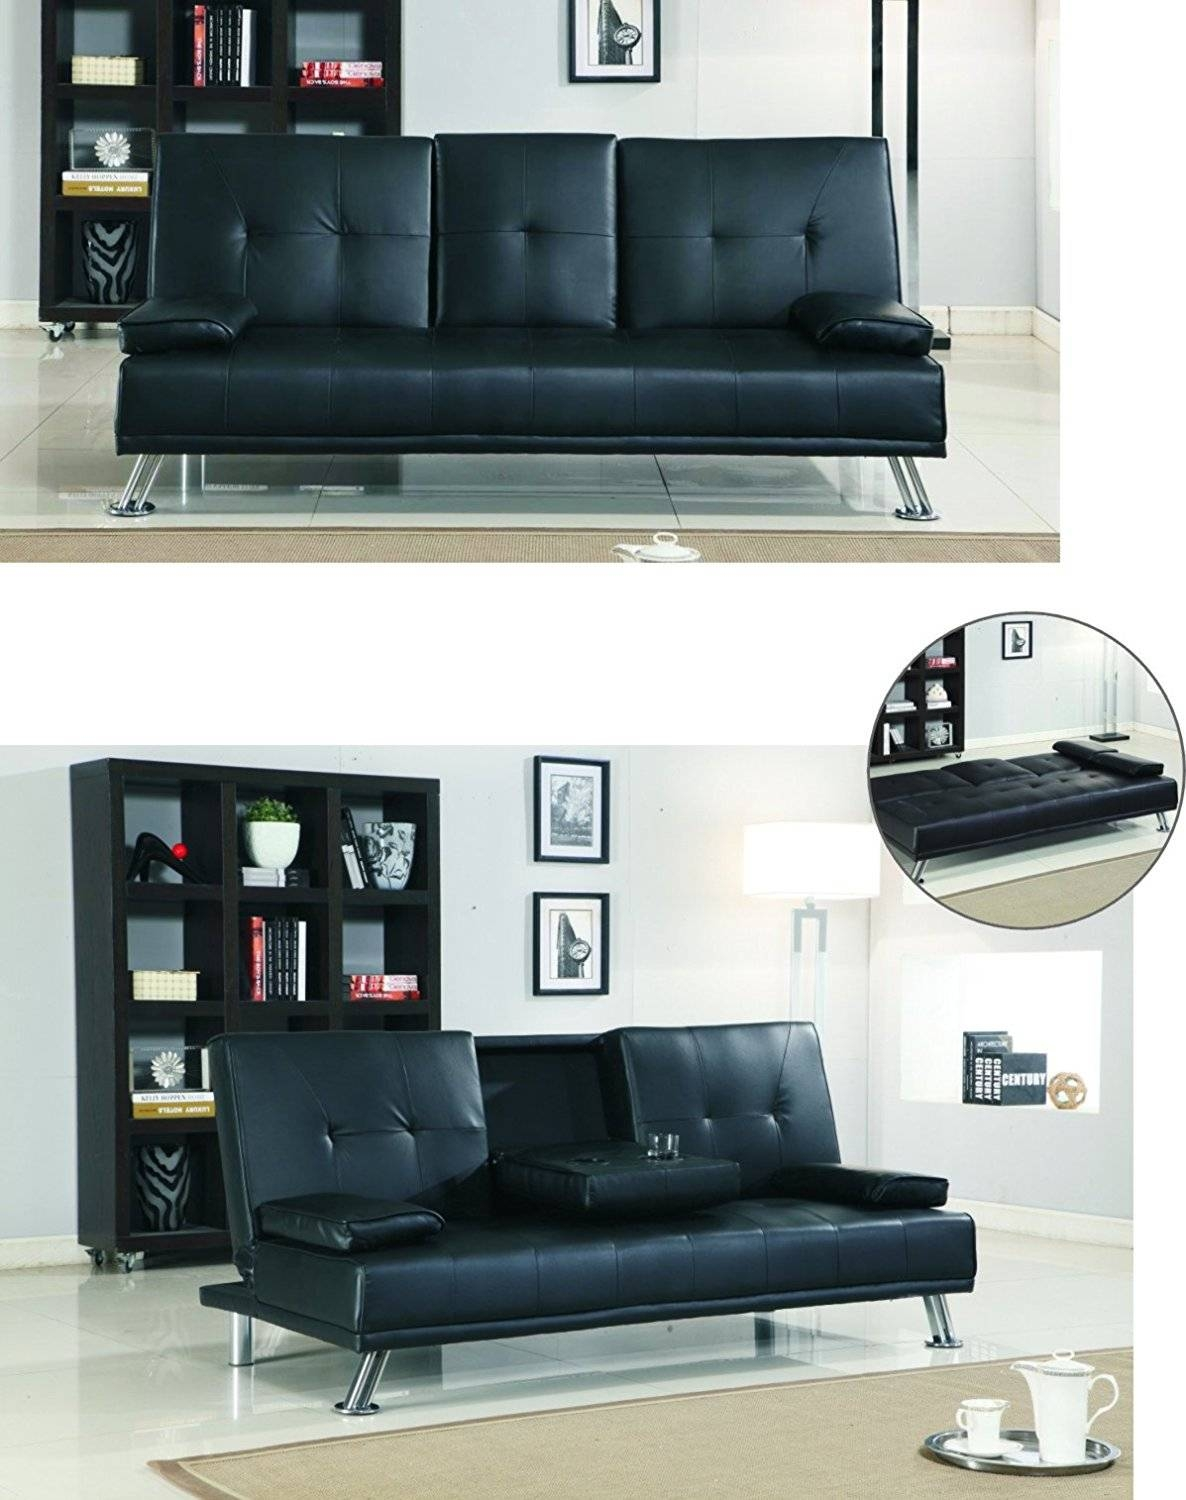 Bluetooth Cinema Sofa Bed With Drink Cup Holder Table Black Faux Pertaining To Sofa Drink Tables (View 10 of 30)